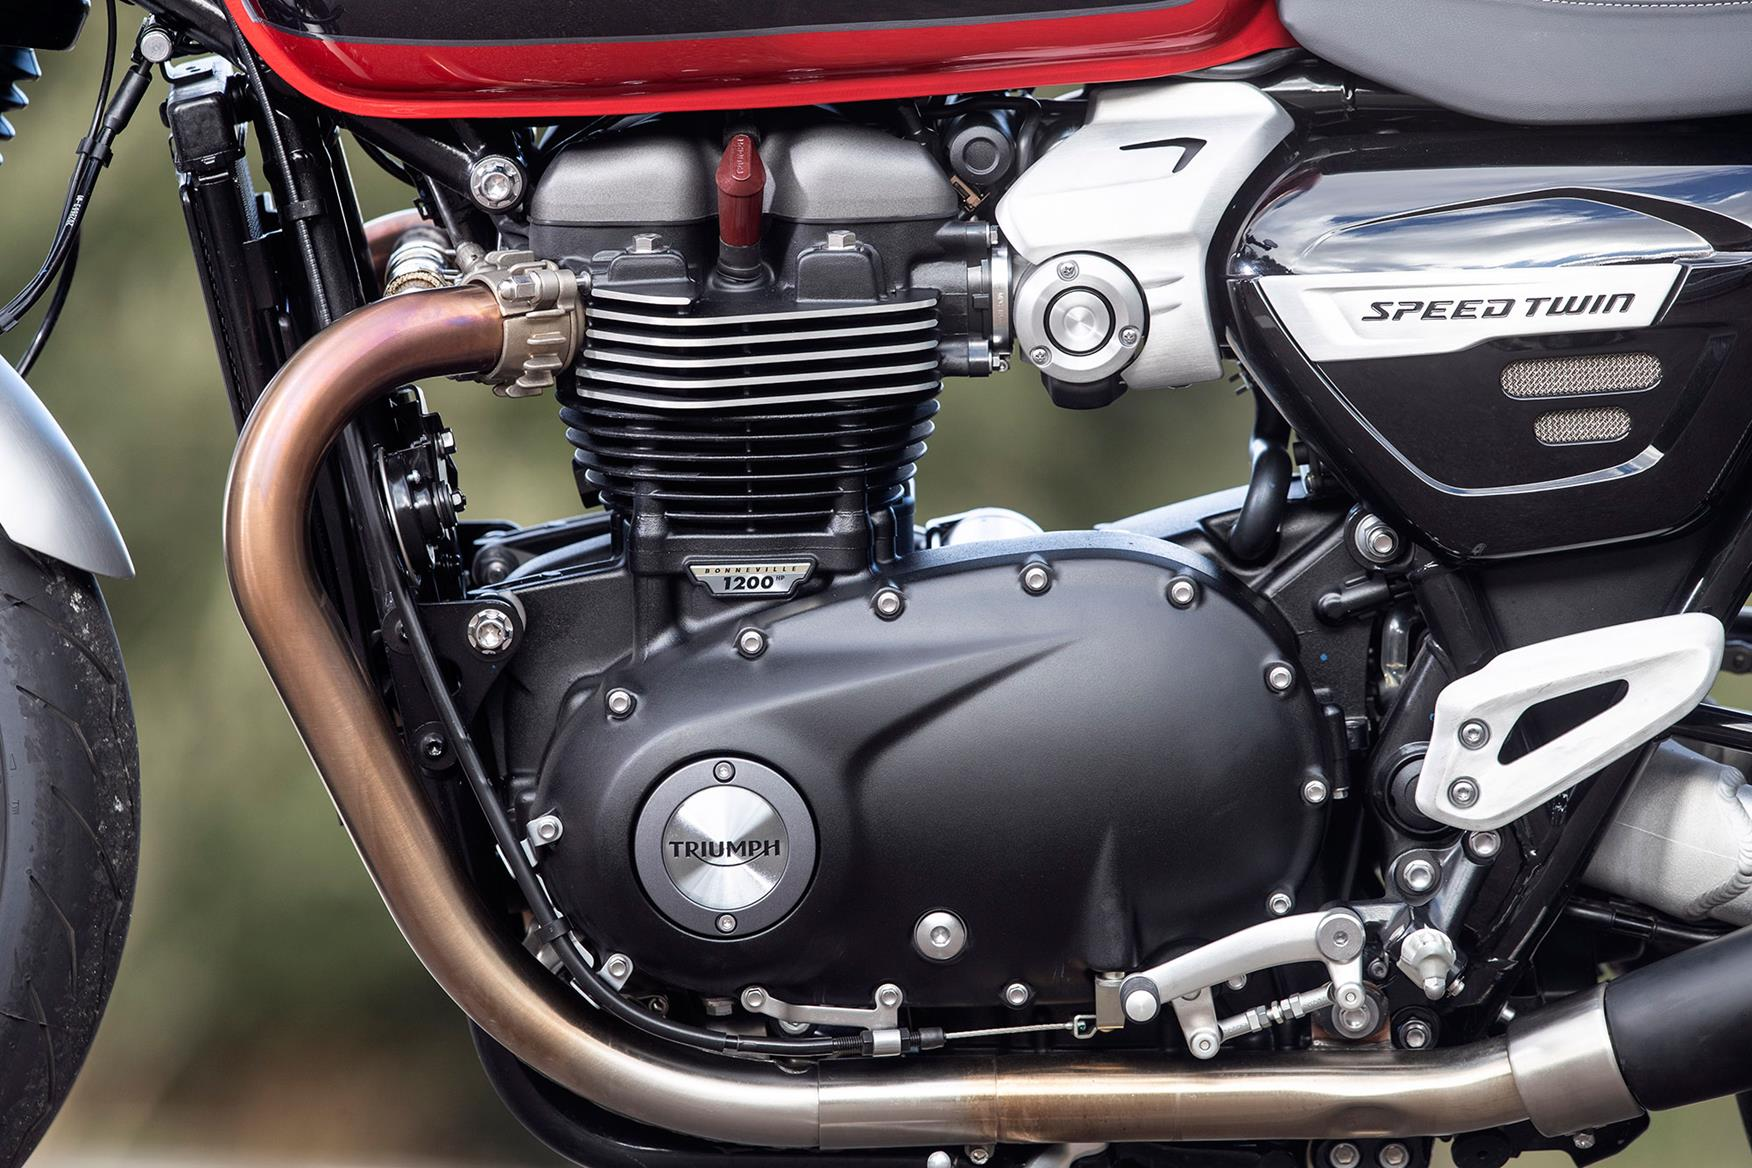 The bike features the same engine as the Thruxton